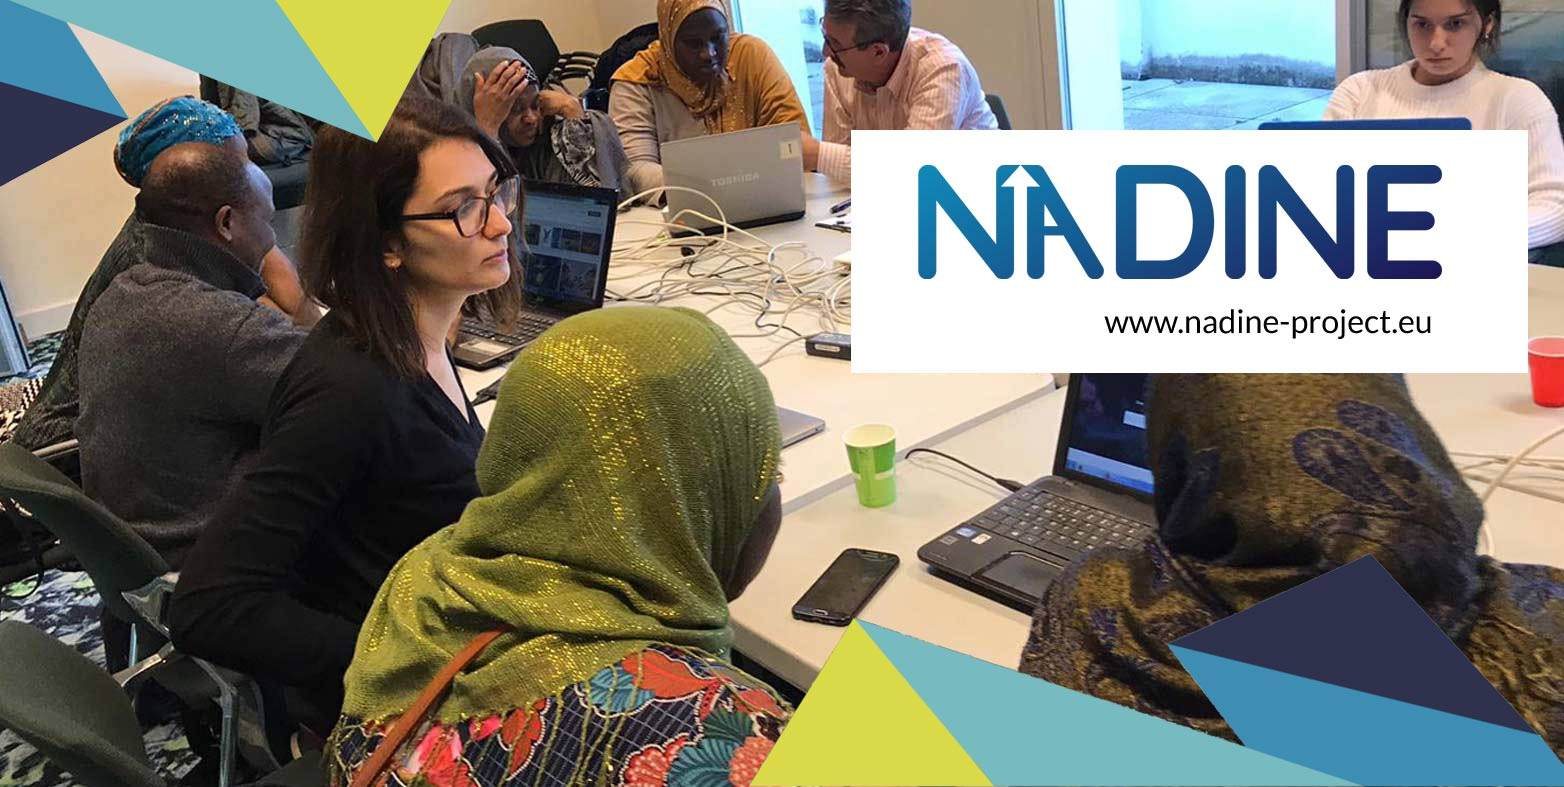 NADINE pilot workshops Kick-off: the platform to facilitate the inclusion of migrants in Europe